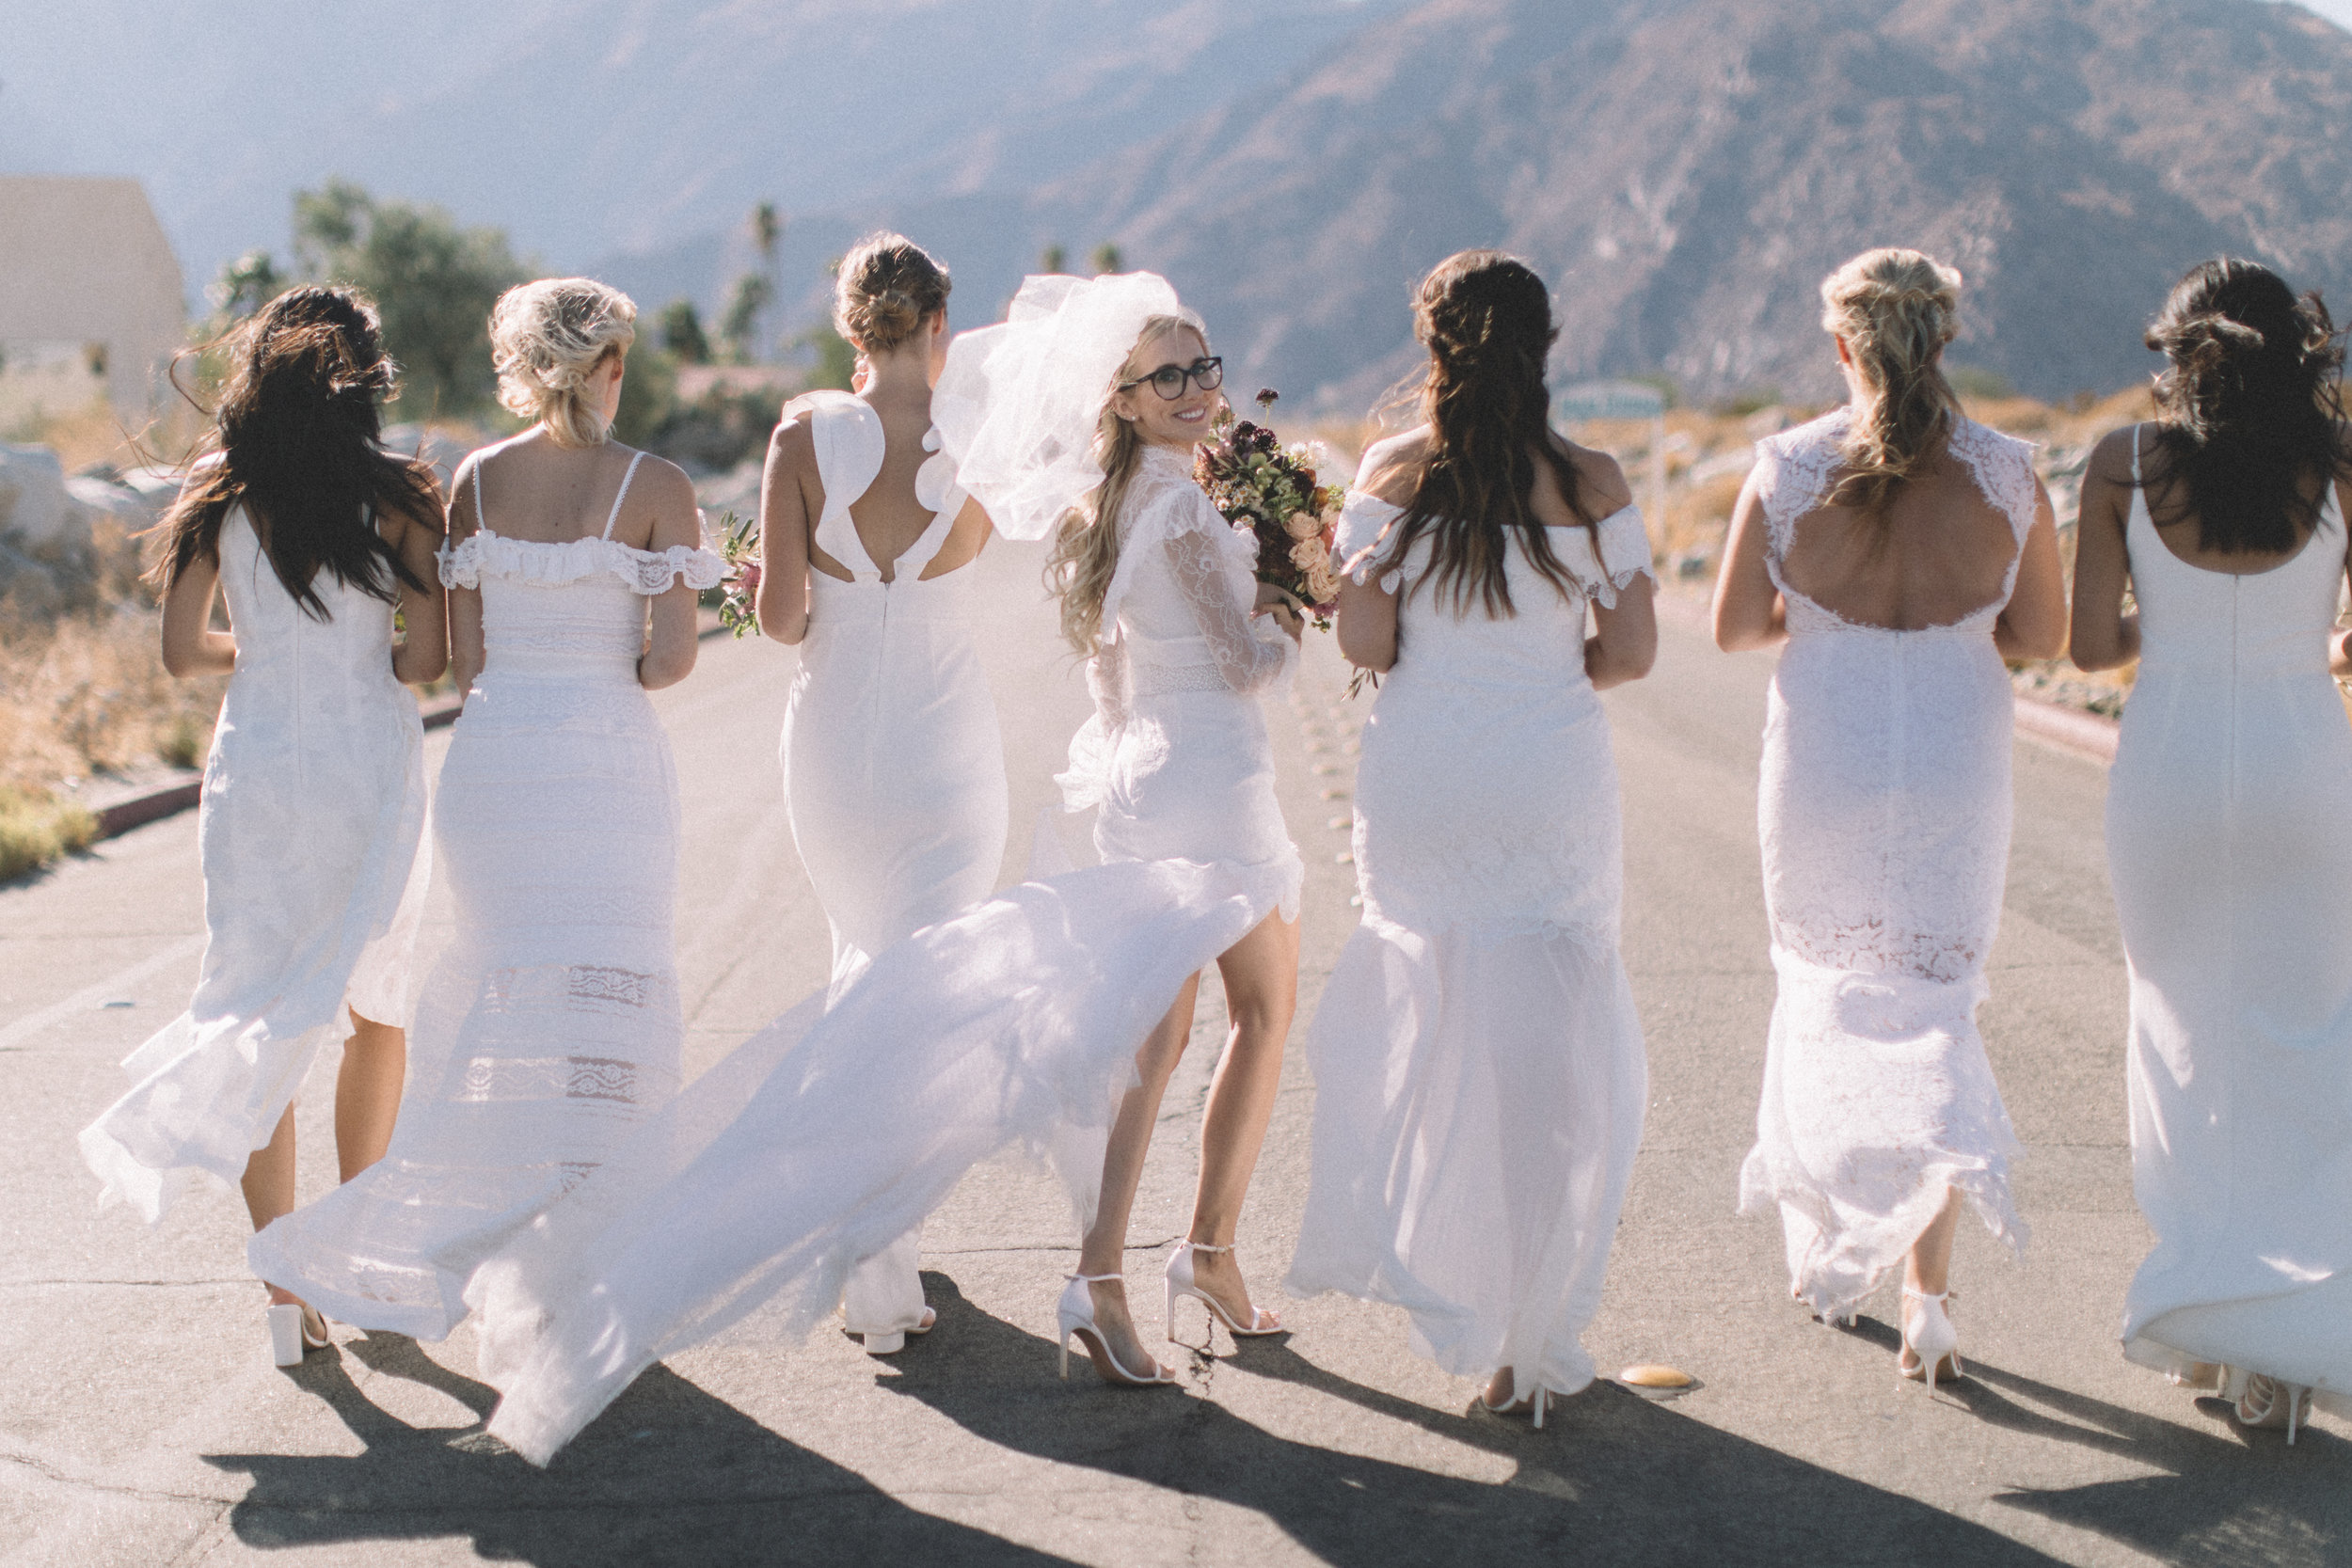 Michelle Garibay Events | Jenavieve Belair | Avalon Palm Springs | Modern Style Meets Farm-to-Table in Fig, Peach and Dusty Mauve | Desert Bridal Party Photos